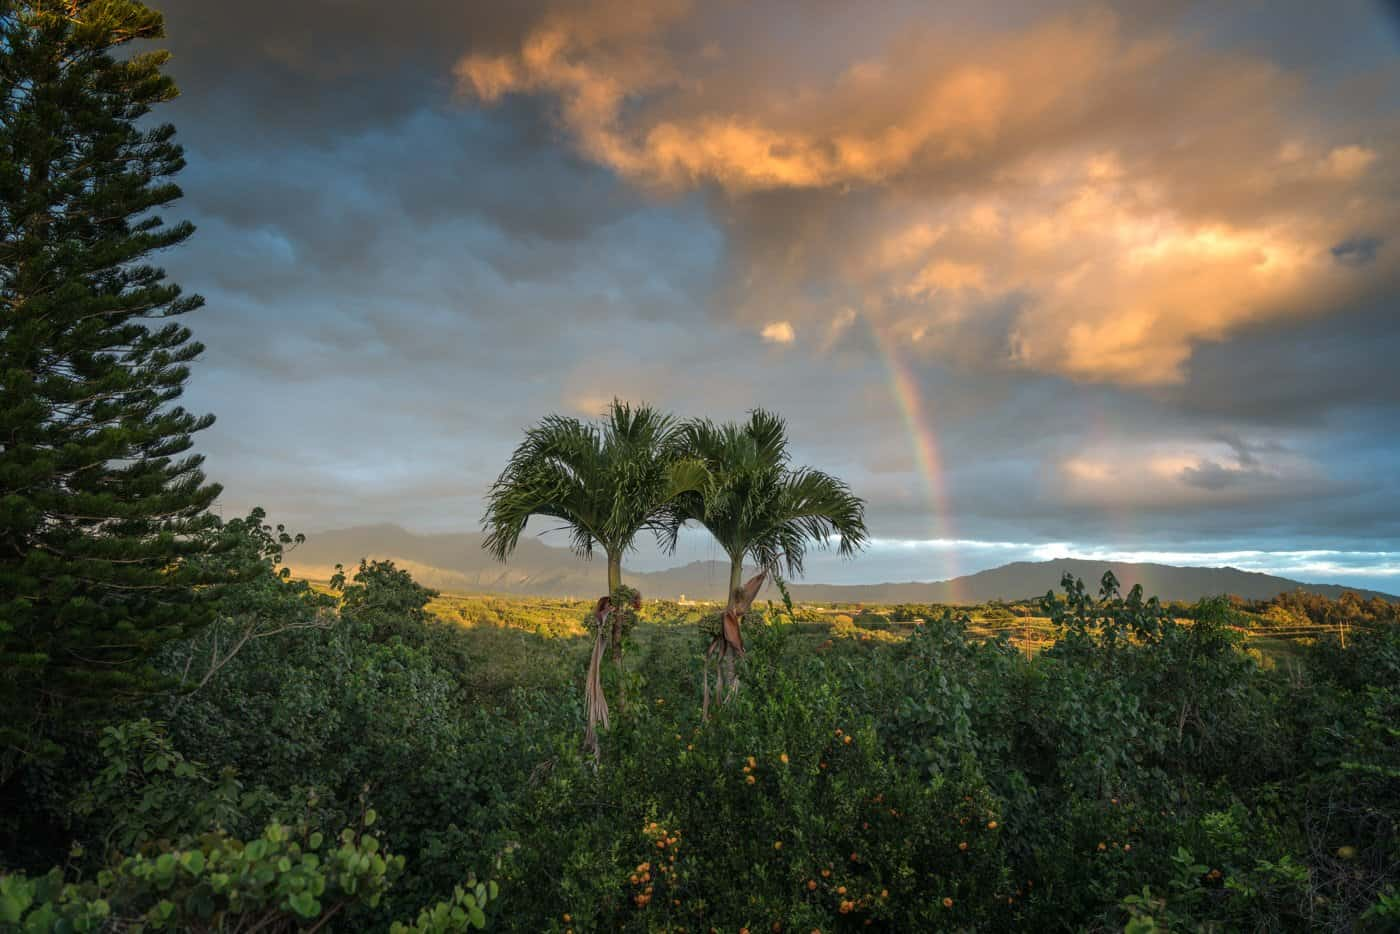 A rainbow graces the landscape for our final sunset in Kauai.